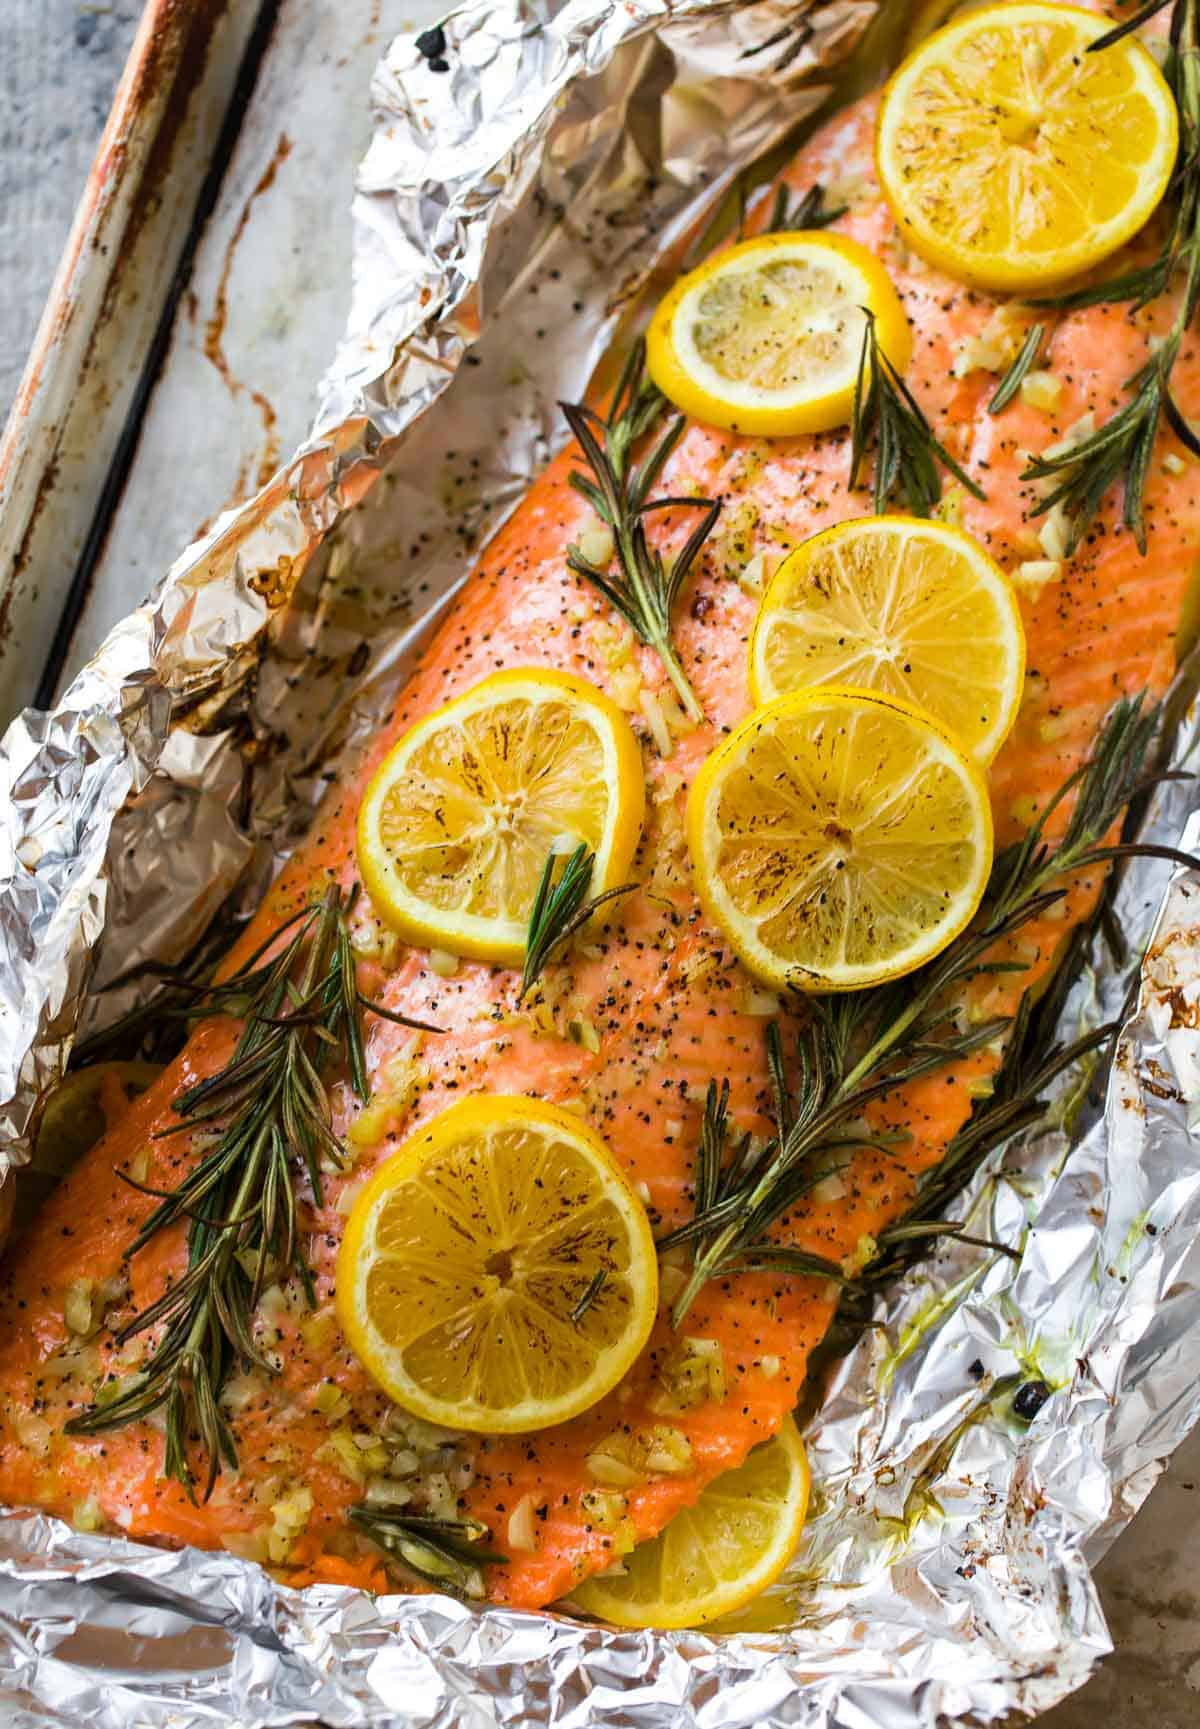 Baked Salmon in Foil with Lemon and Rosemary